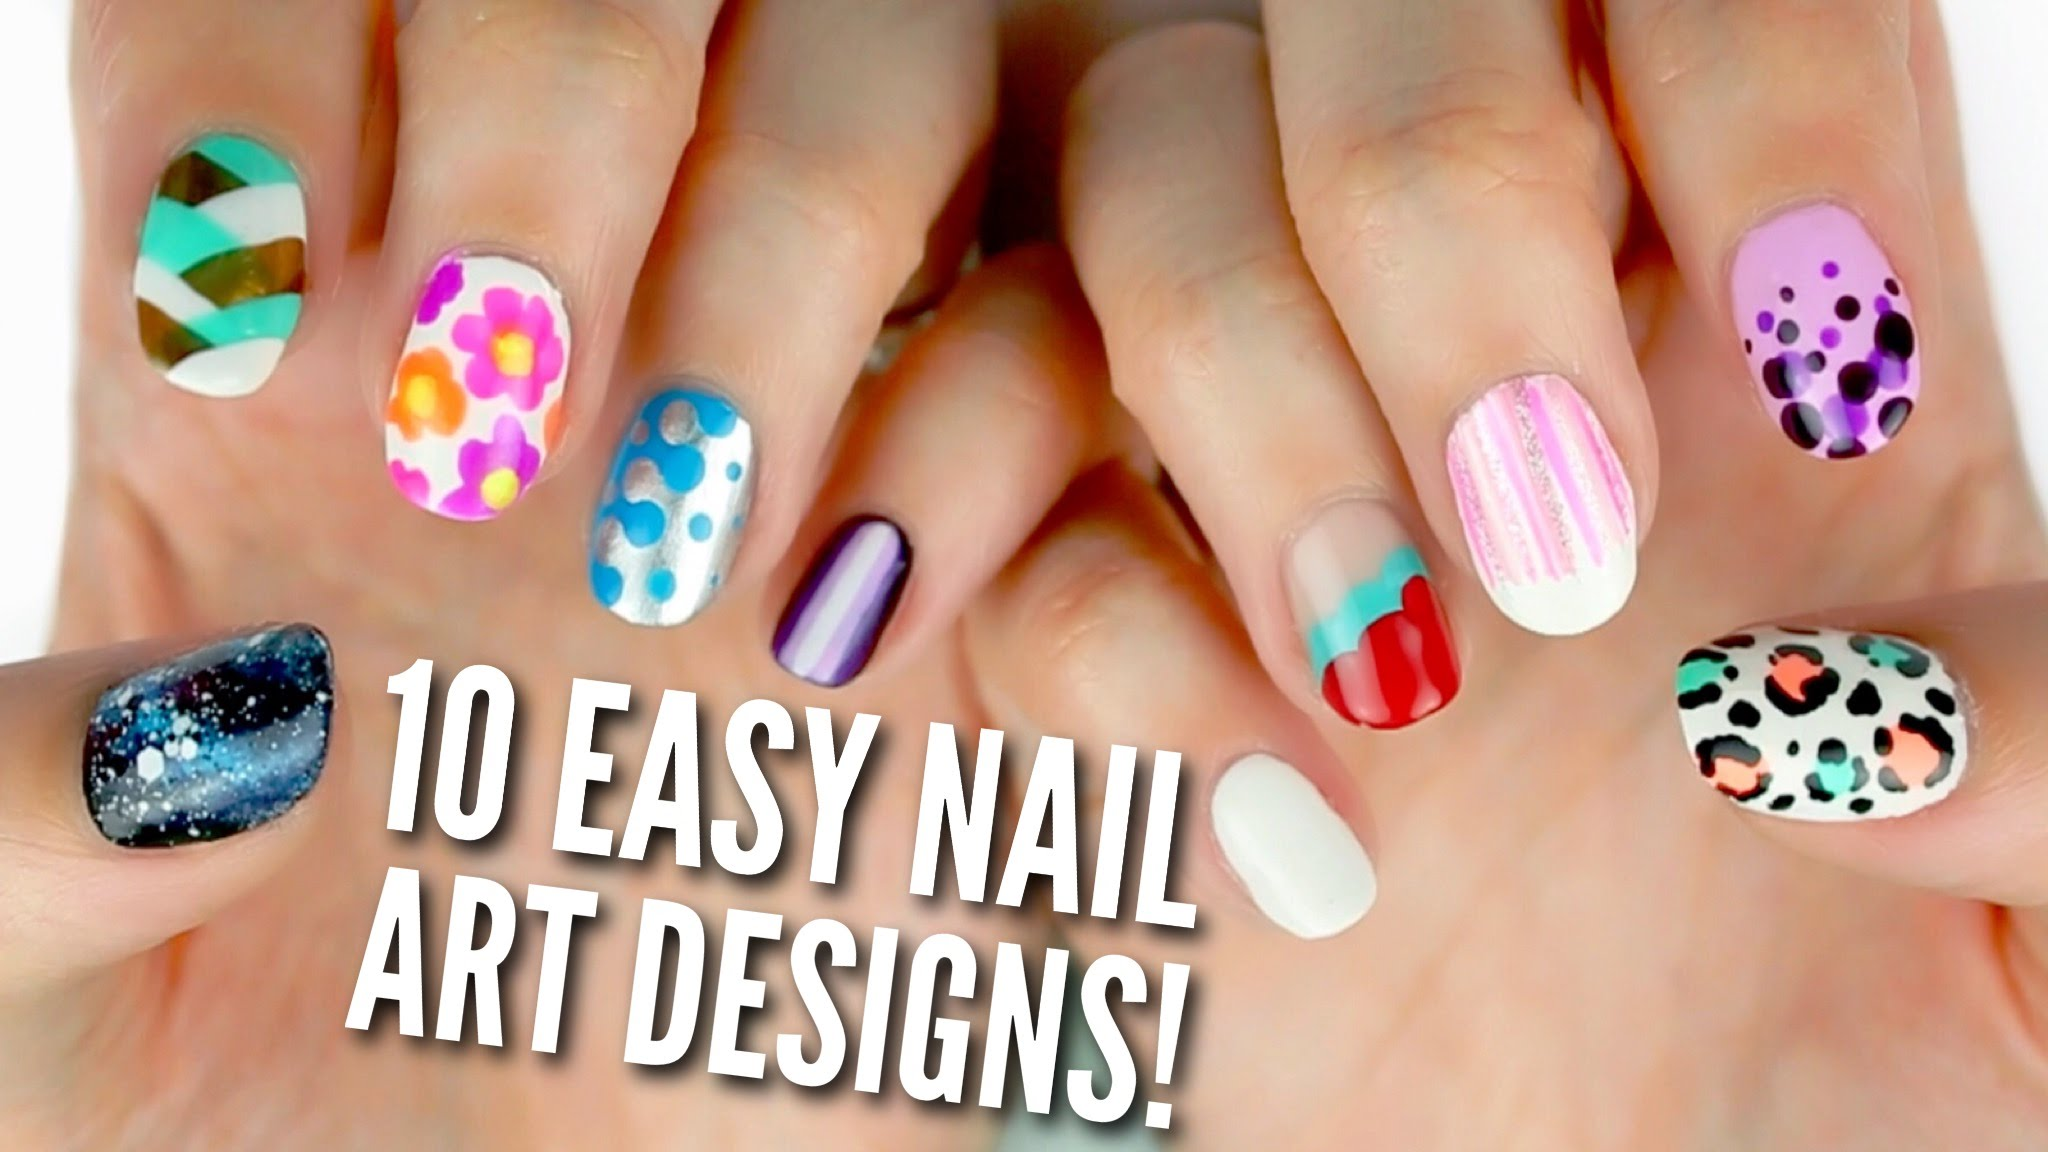 10 Easy Nail Art Designs for Beginners: The Ultimate Guide! YouTube